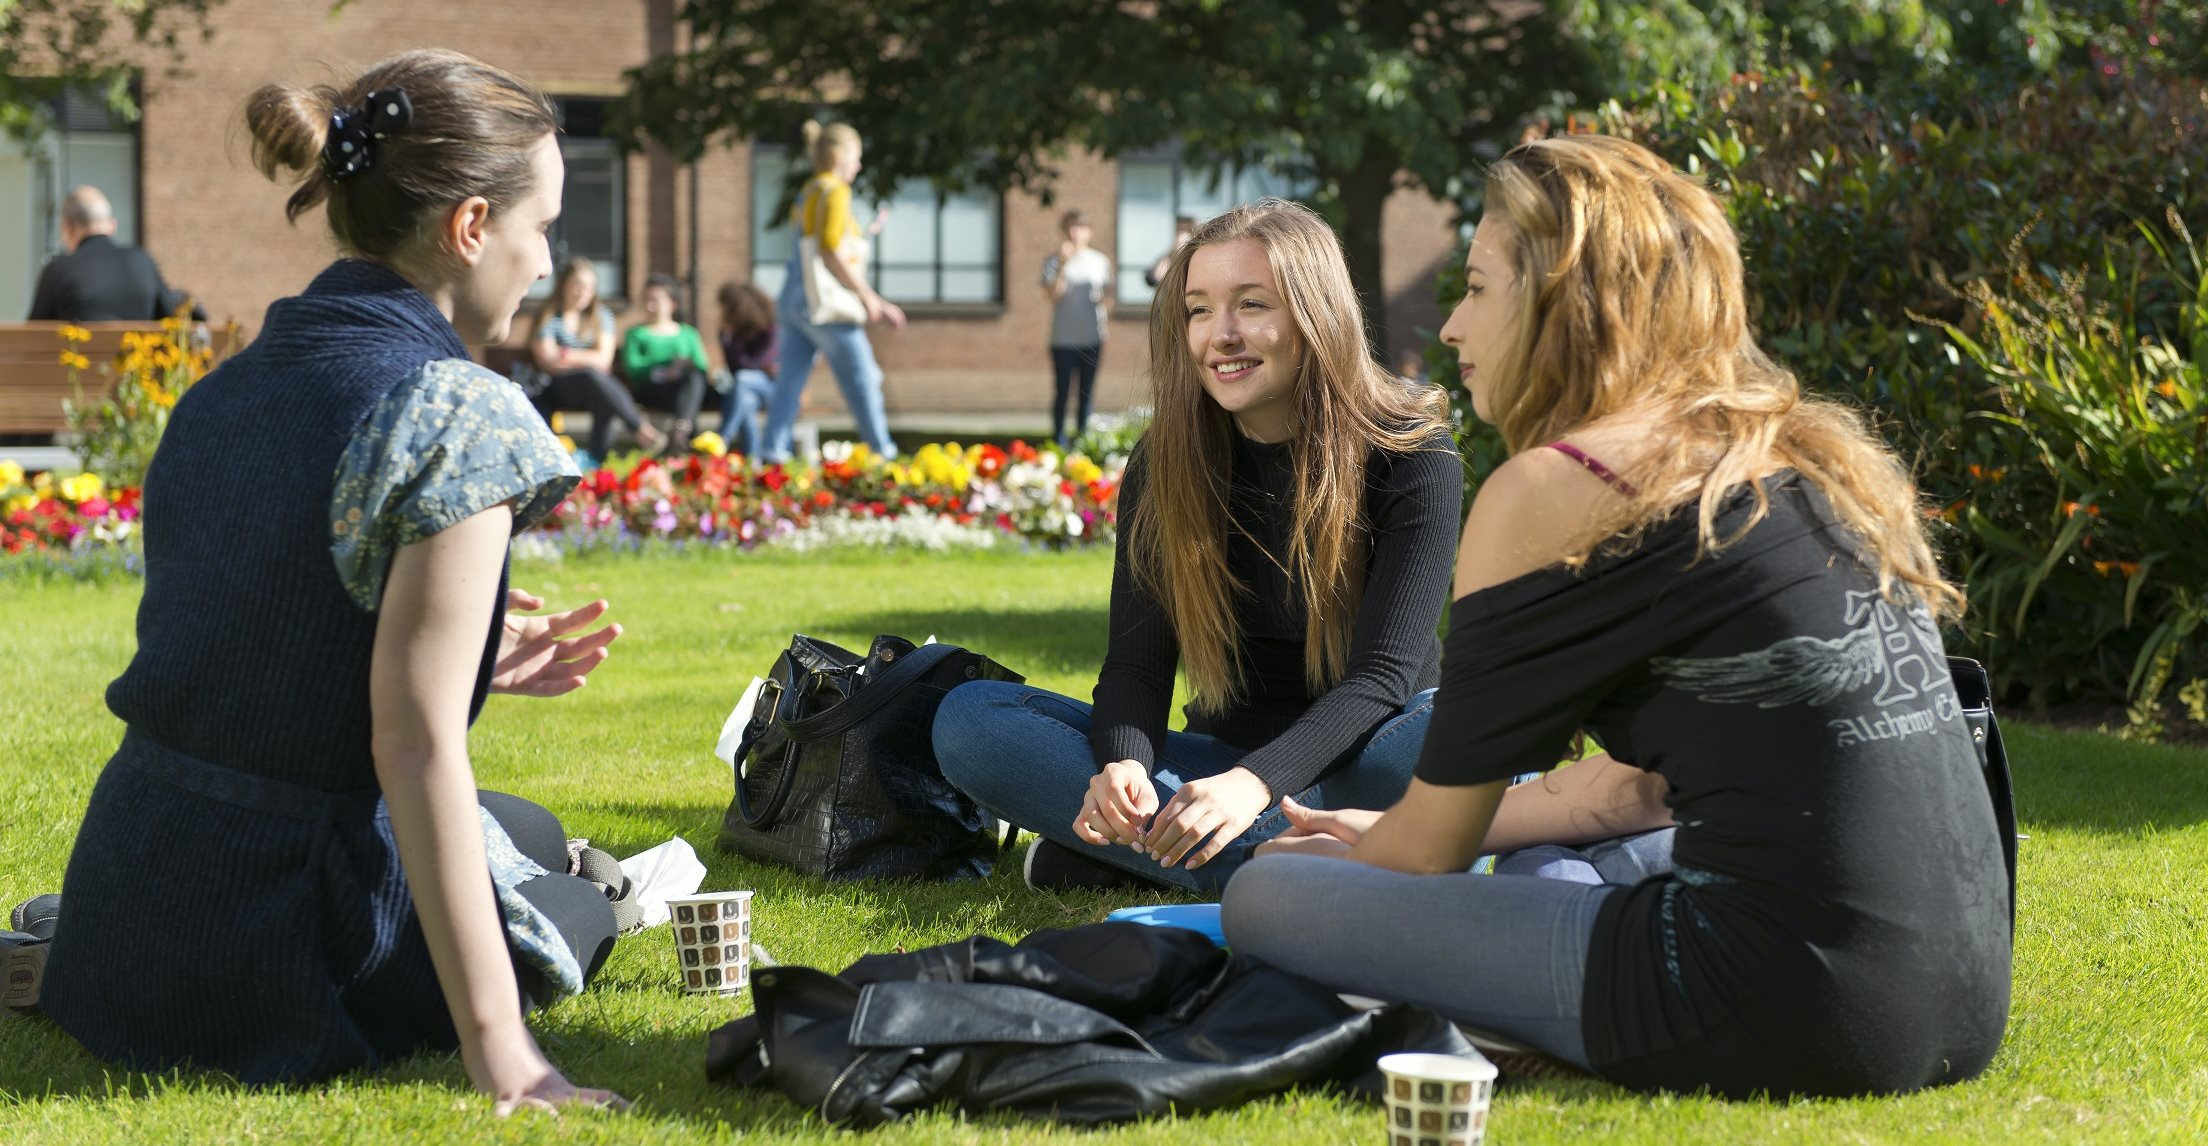 Female Students sat on Campus Lawn Landscape